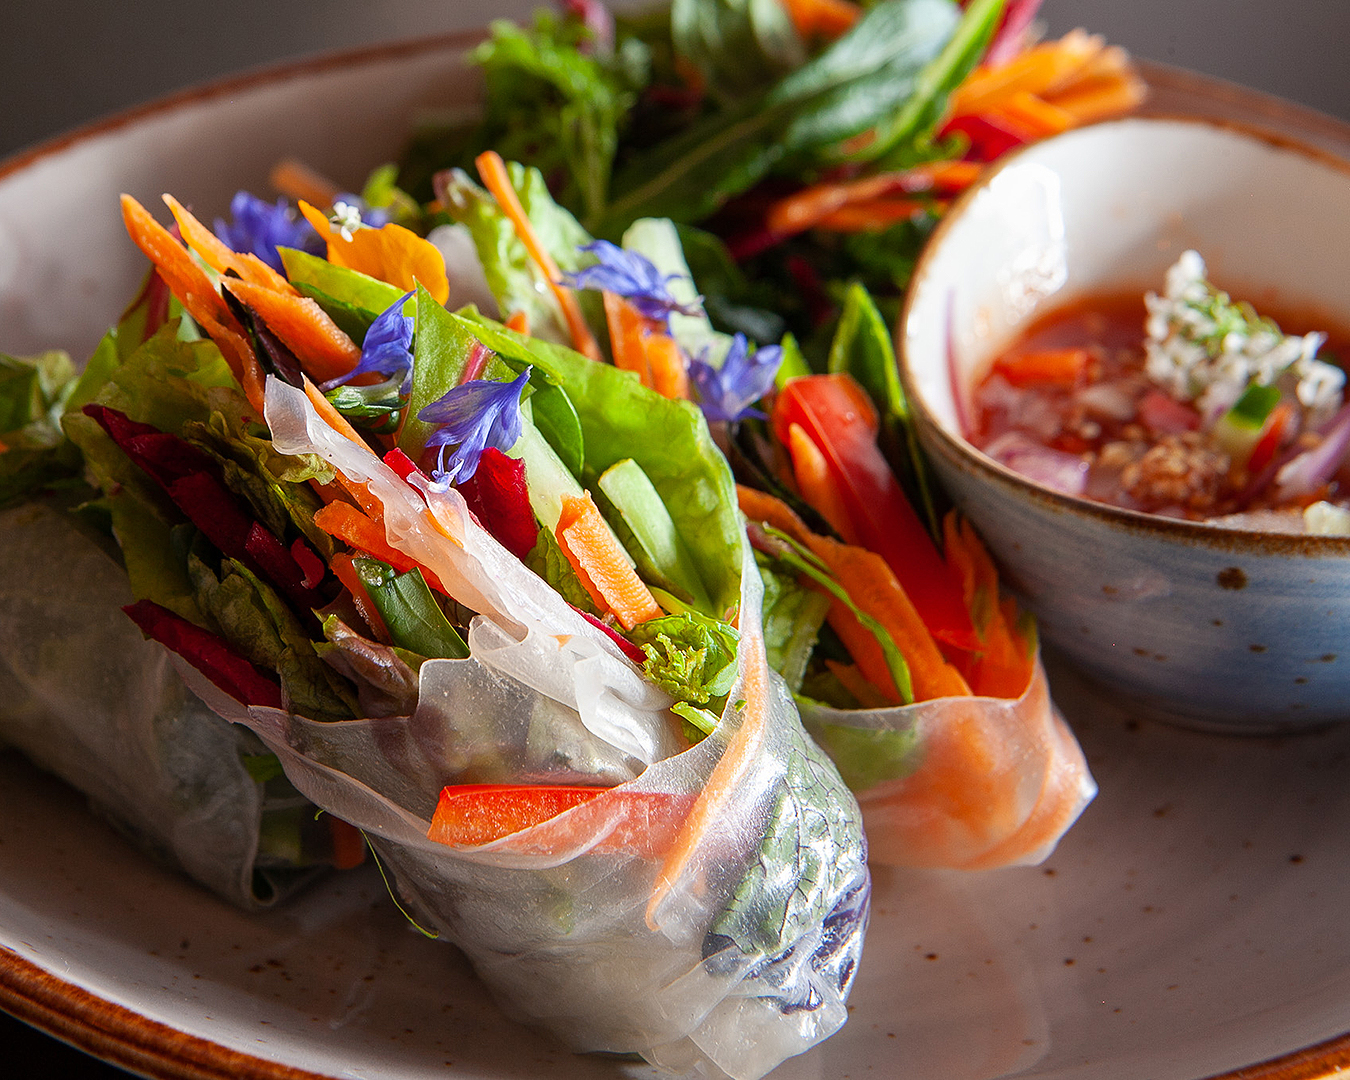 Khu Khu spring rolls looking fresh and delicious on a plate.